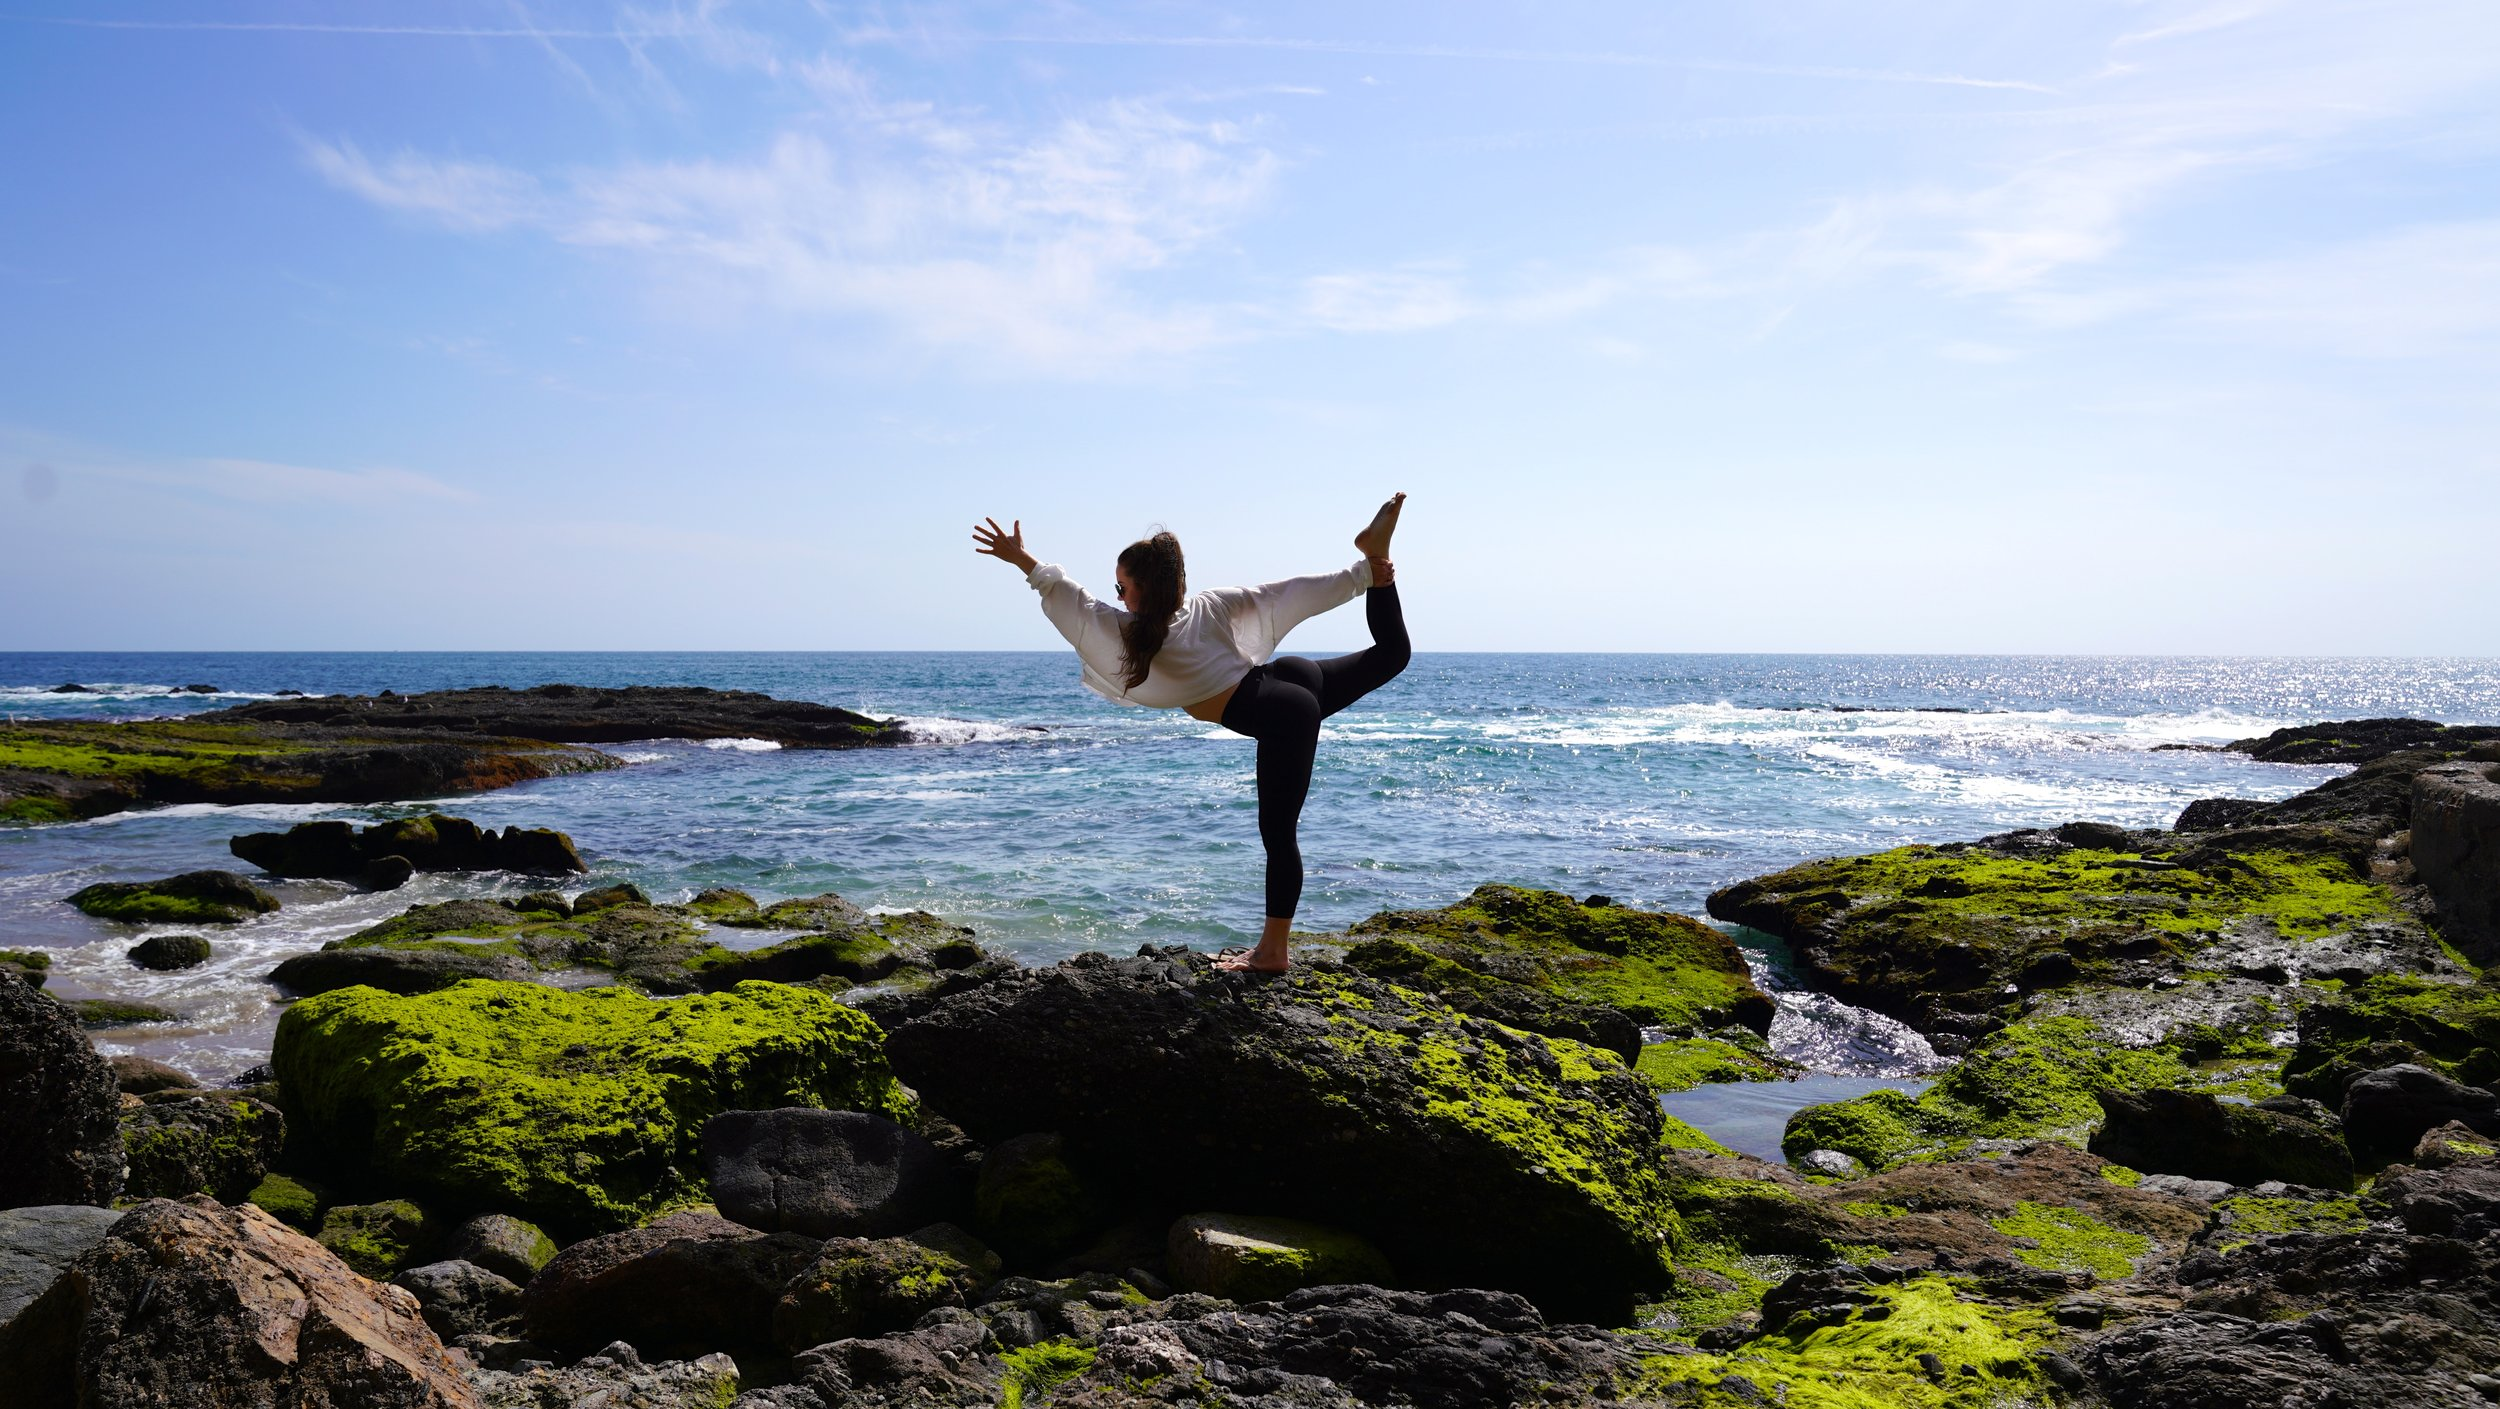 Kala MacDonald    is a Kansas City, Missouri native currently calling Los Angeles home. A longtime wellness and travel enthusiast, Kala has spent a total of ten weeks in Bali, Indonesia split between 2016 and 2019 to complete an immersive 500-hour Tantric Hatha yoga teacher training. She is currently using her training to lead private sessions, events, and retreats around the world, and continues to deepen her knowledge and practice through ongoing education and workshops. Kala has studied spinal anatomy, the pelvis, and pre- and post-natal yoga. Kala is the founder of the nonprofit organization   Yoga to Cope  , which provides online, yoga-based educational and support resources to aid those affected by trauma and pre-trauma. She is also host the organization's podcast, which you can listen to via    iTunes    or wherever you listen to podcasts!